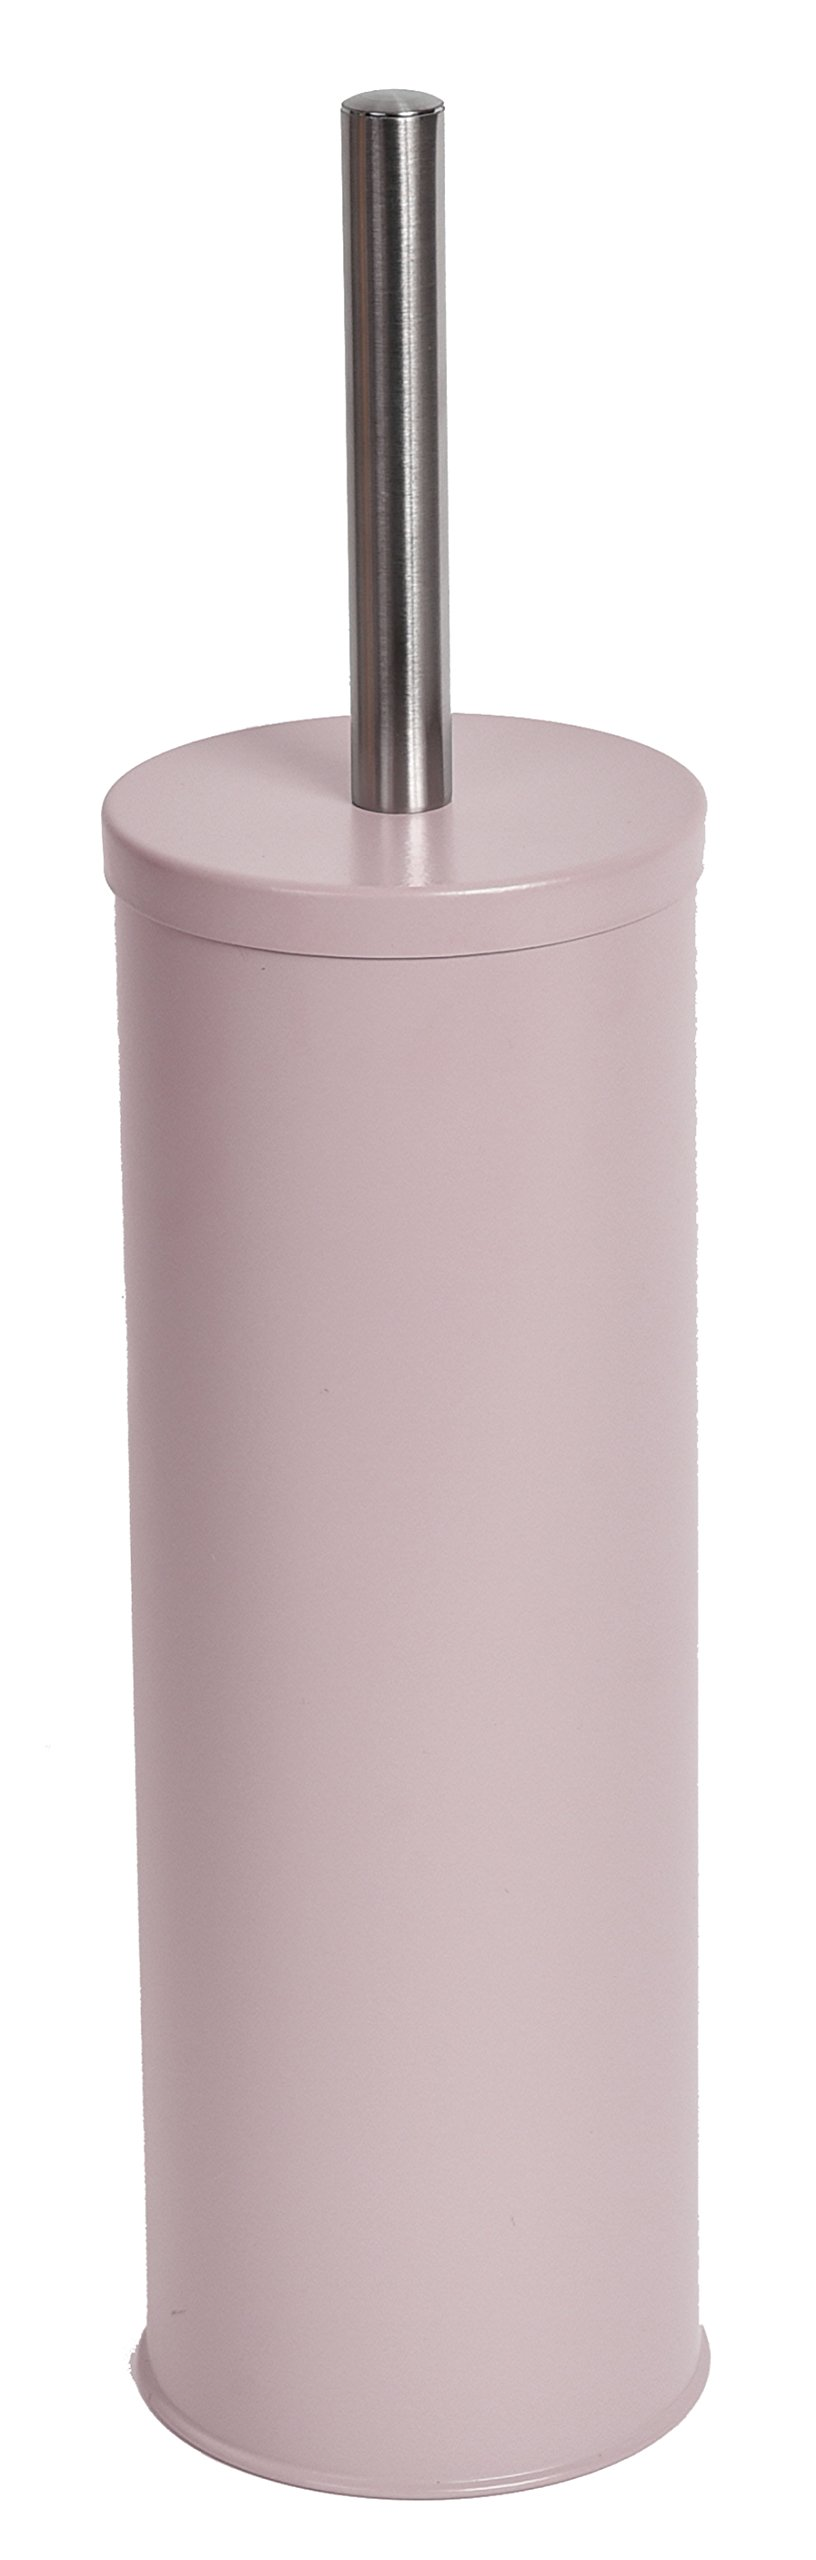 EVIDECO Free Standing Toilet Brush and Holder Color: Pale Pink